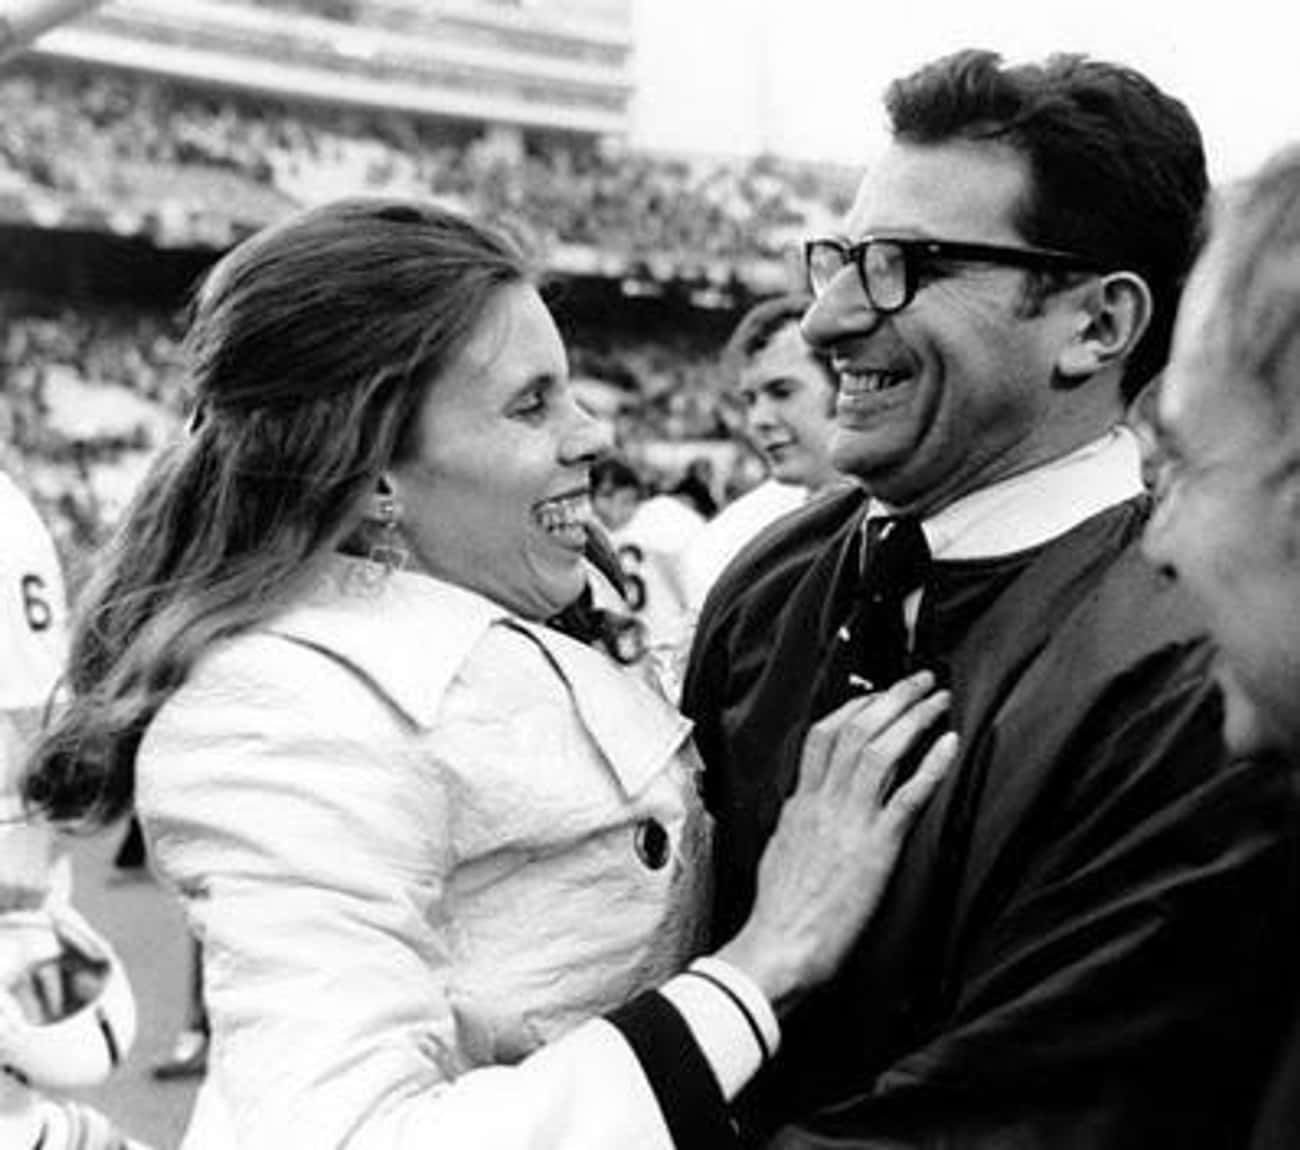 Paterno Wasn't Allowed To  is listed (or ranked) 4 on the list How Joe Paterno's Silence In The Face Of Abuse Led To His Stunning Fall From Grace